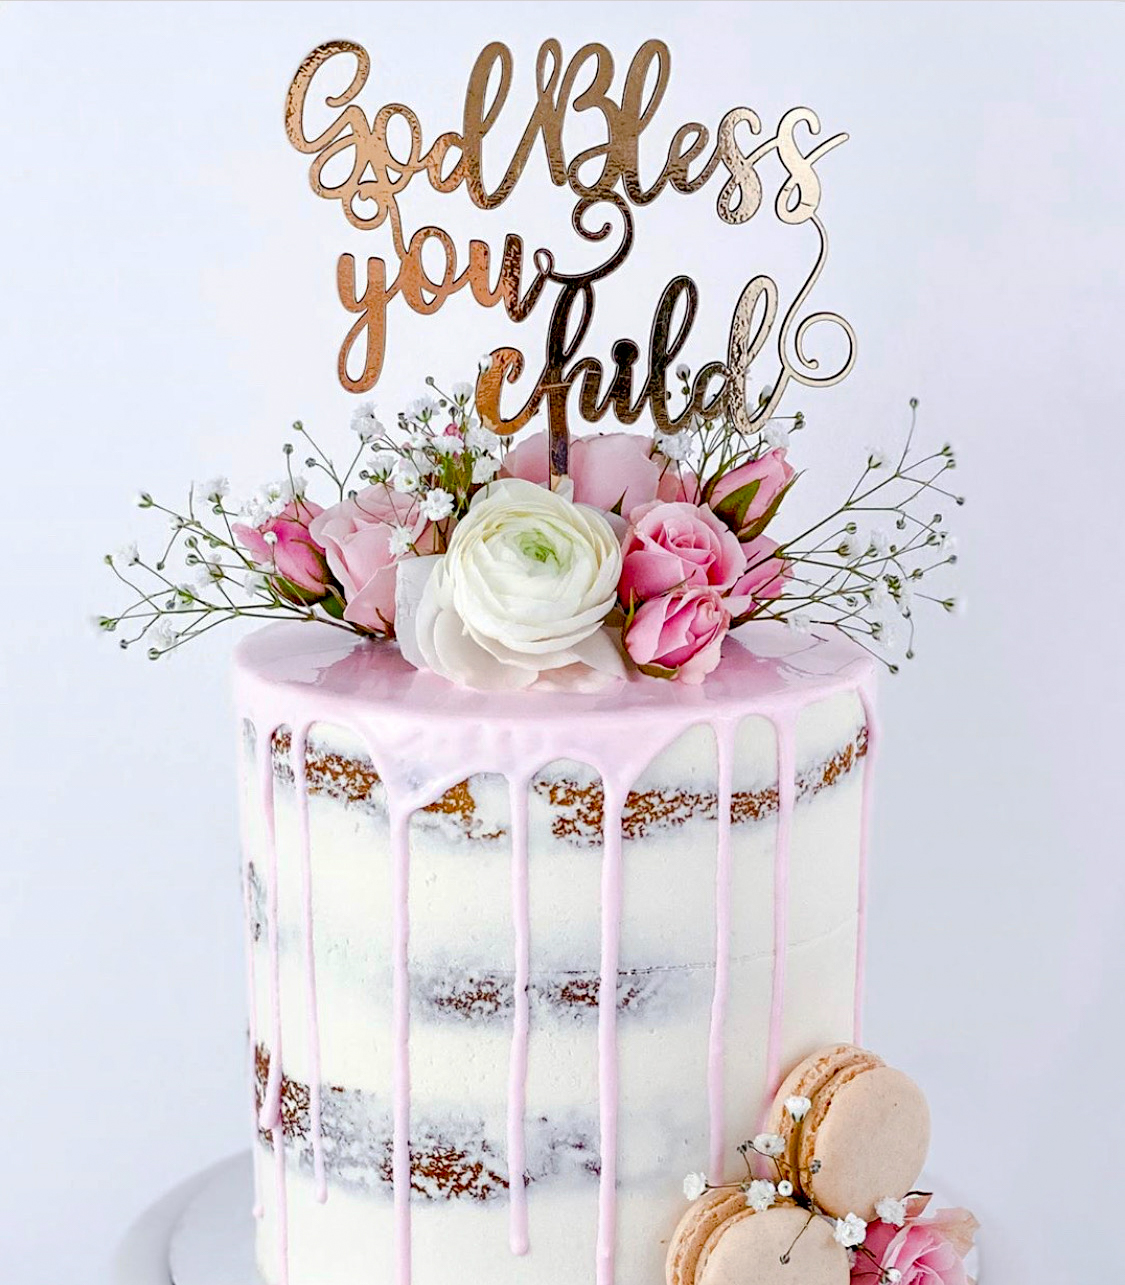 Water to Wheat Cakery LLC Cake Topper